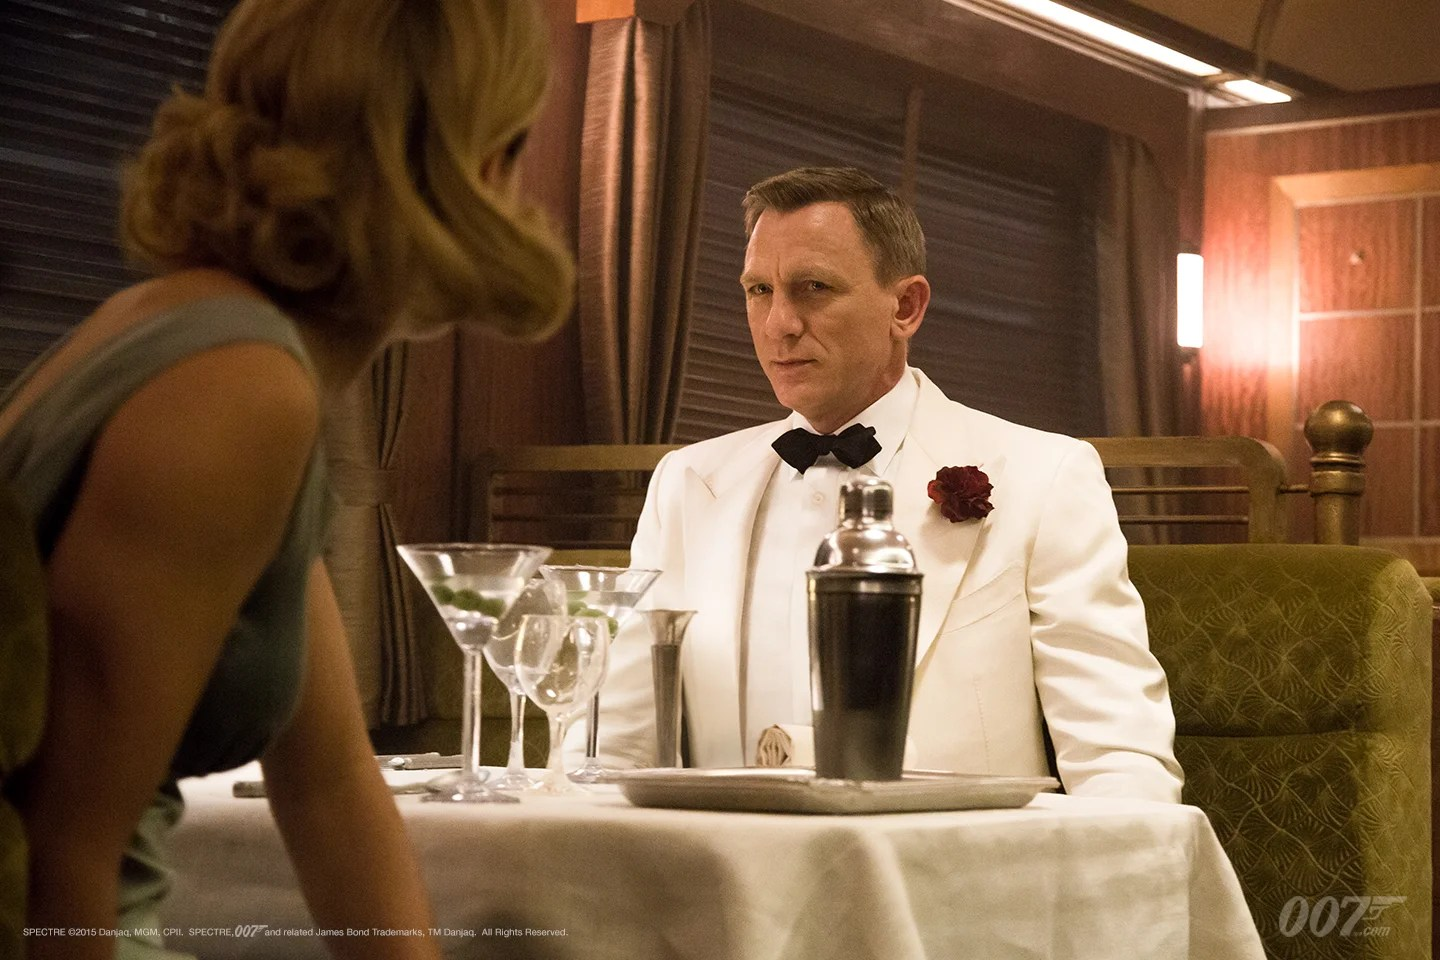 Inglourious Basterds Hd Wallpaper The Official James Bond 007 Website The Costumes Of Spectre